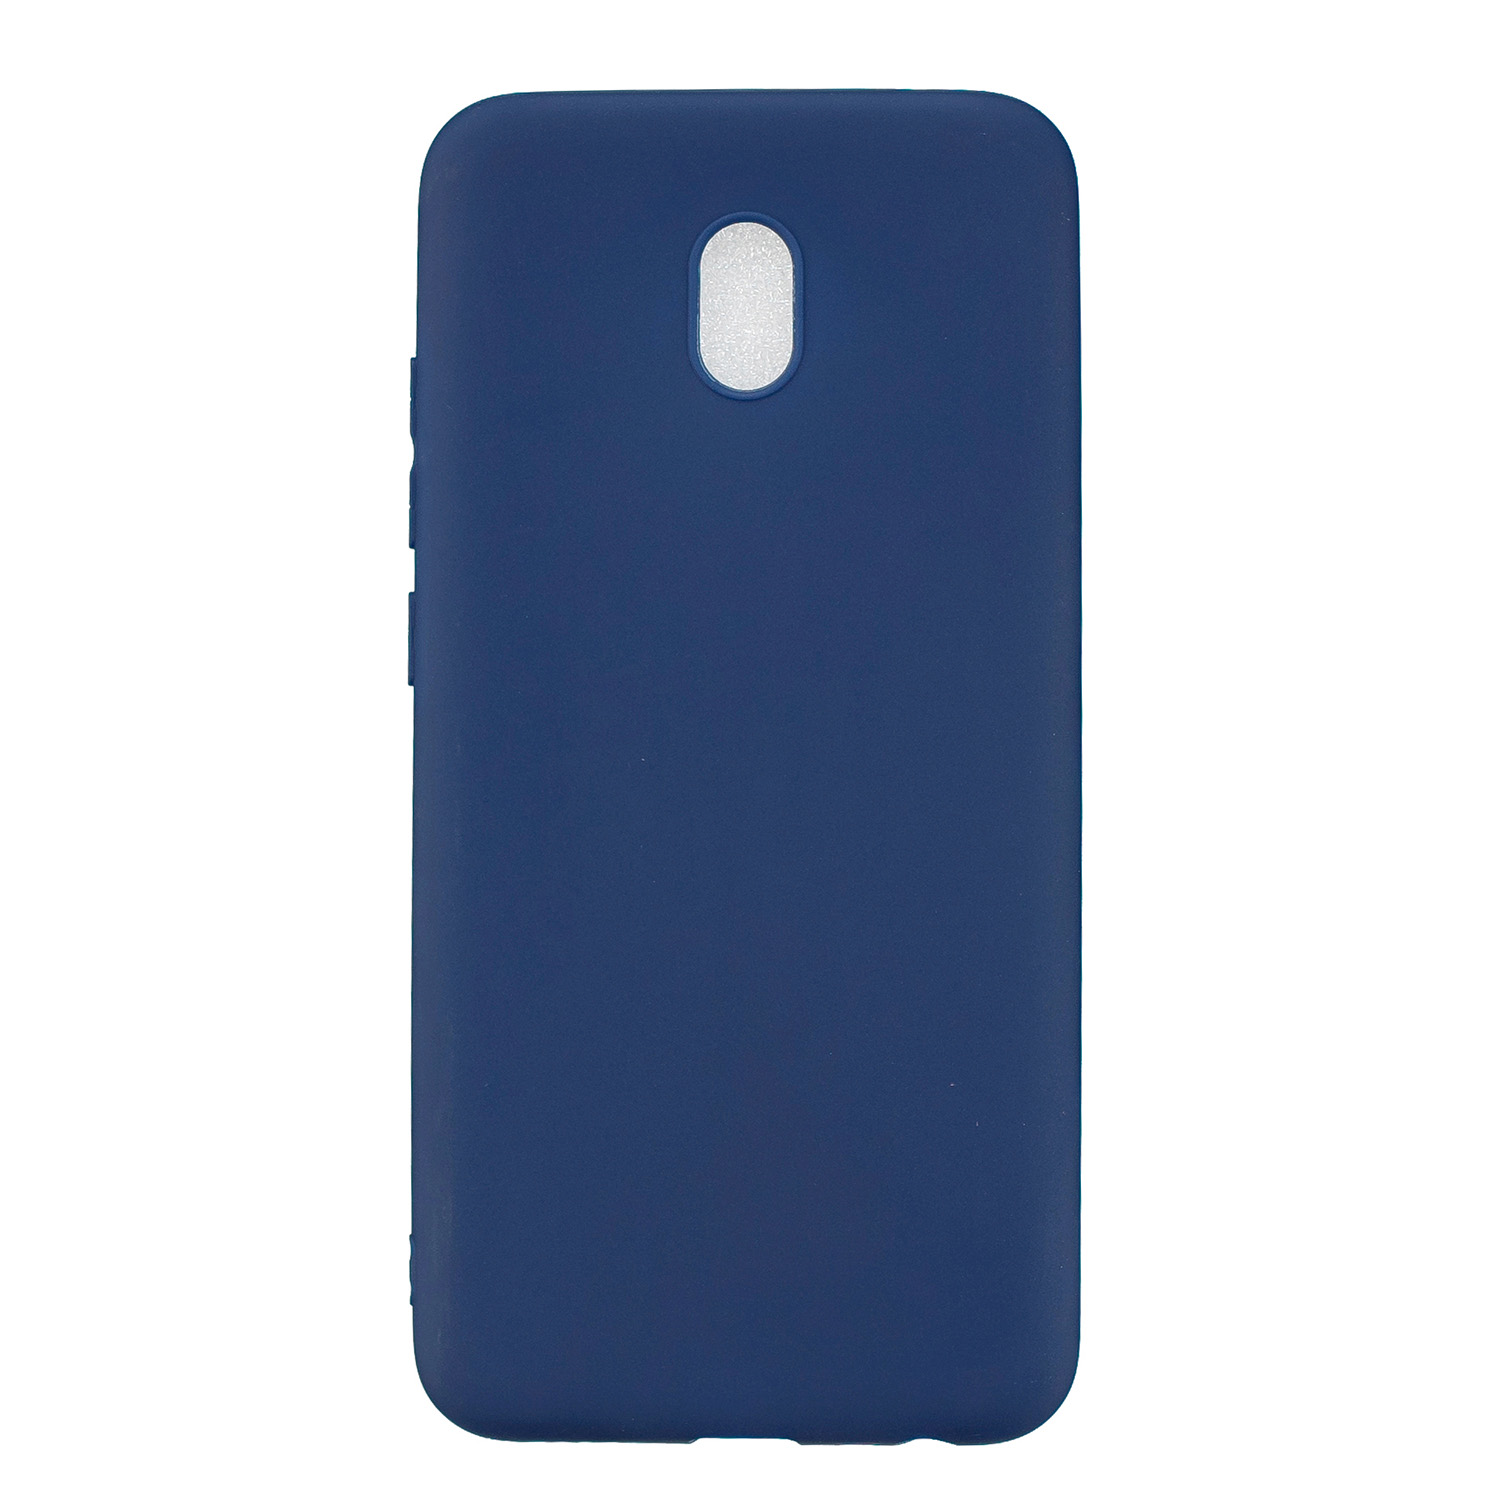 For Redmi 8 8A note 8T TPU Back Cover Soft Candy Color Frosted Surface Shockproof TPU Mobile Phone Protective Case 7